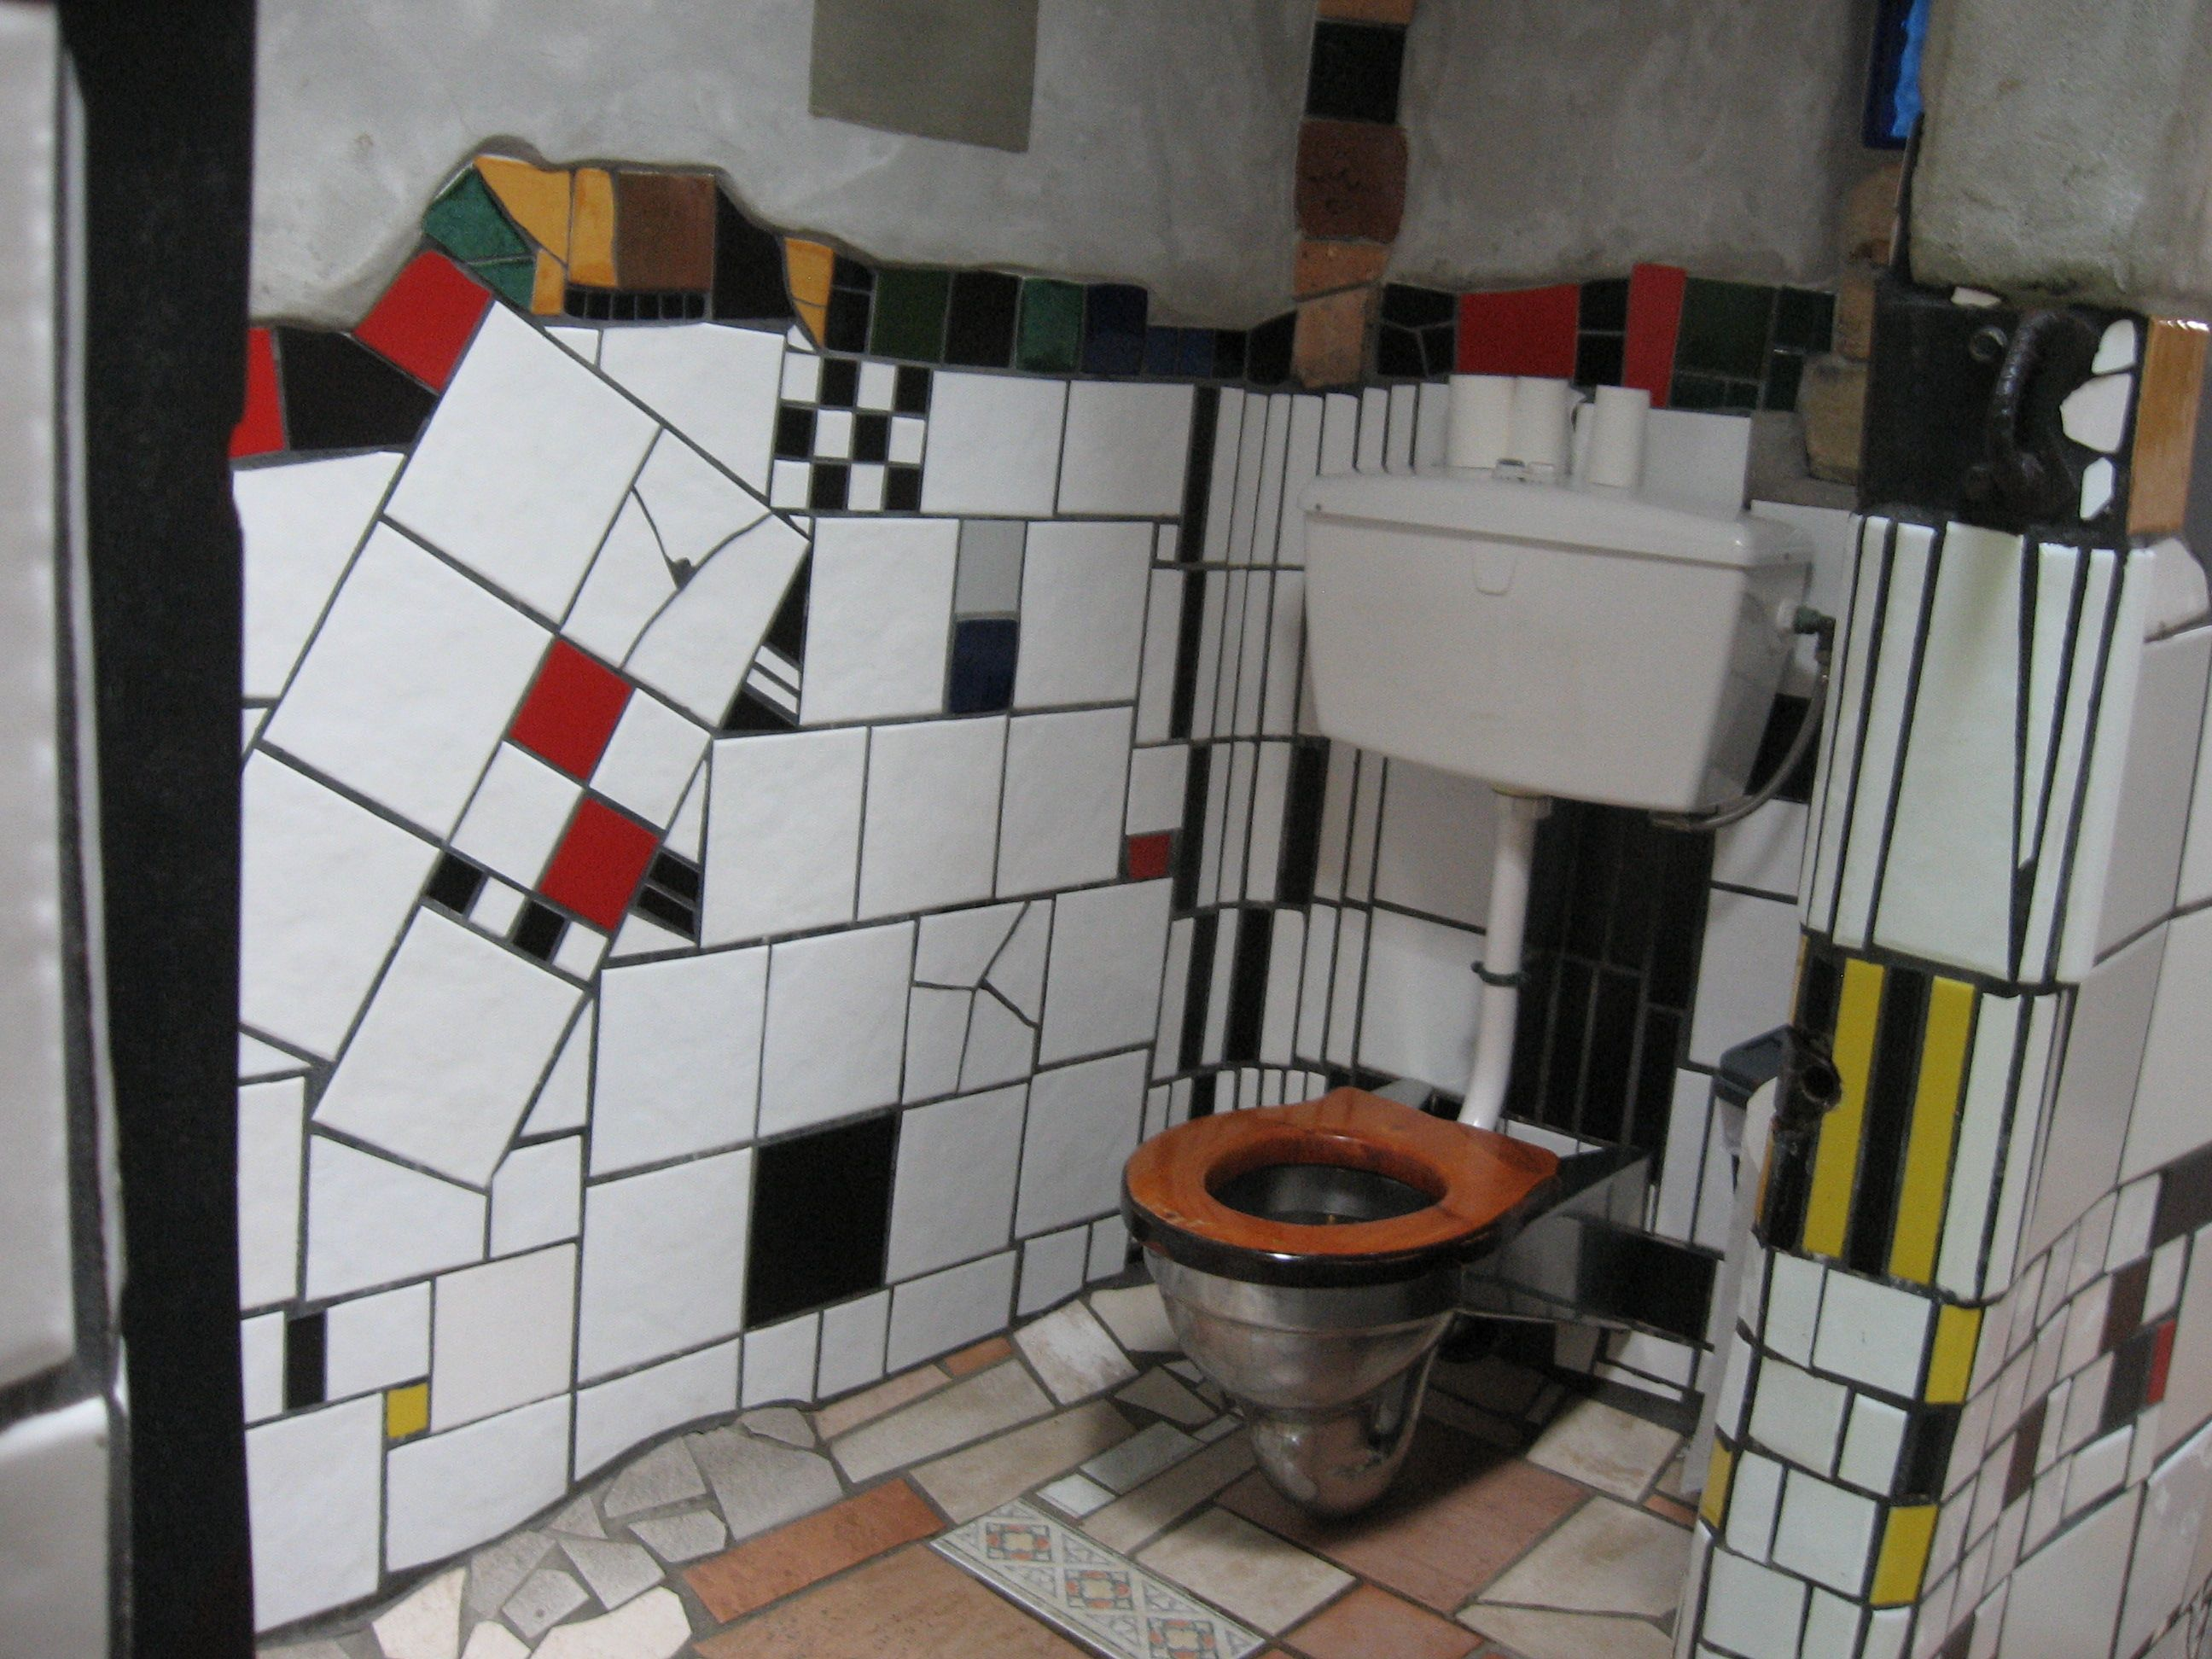 Hundertwasser Interieur New Zealand Top To Bottom | Old Maine Travelers